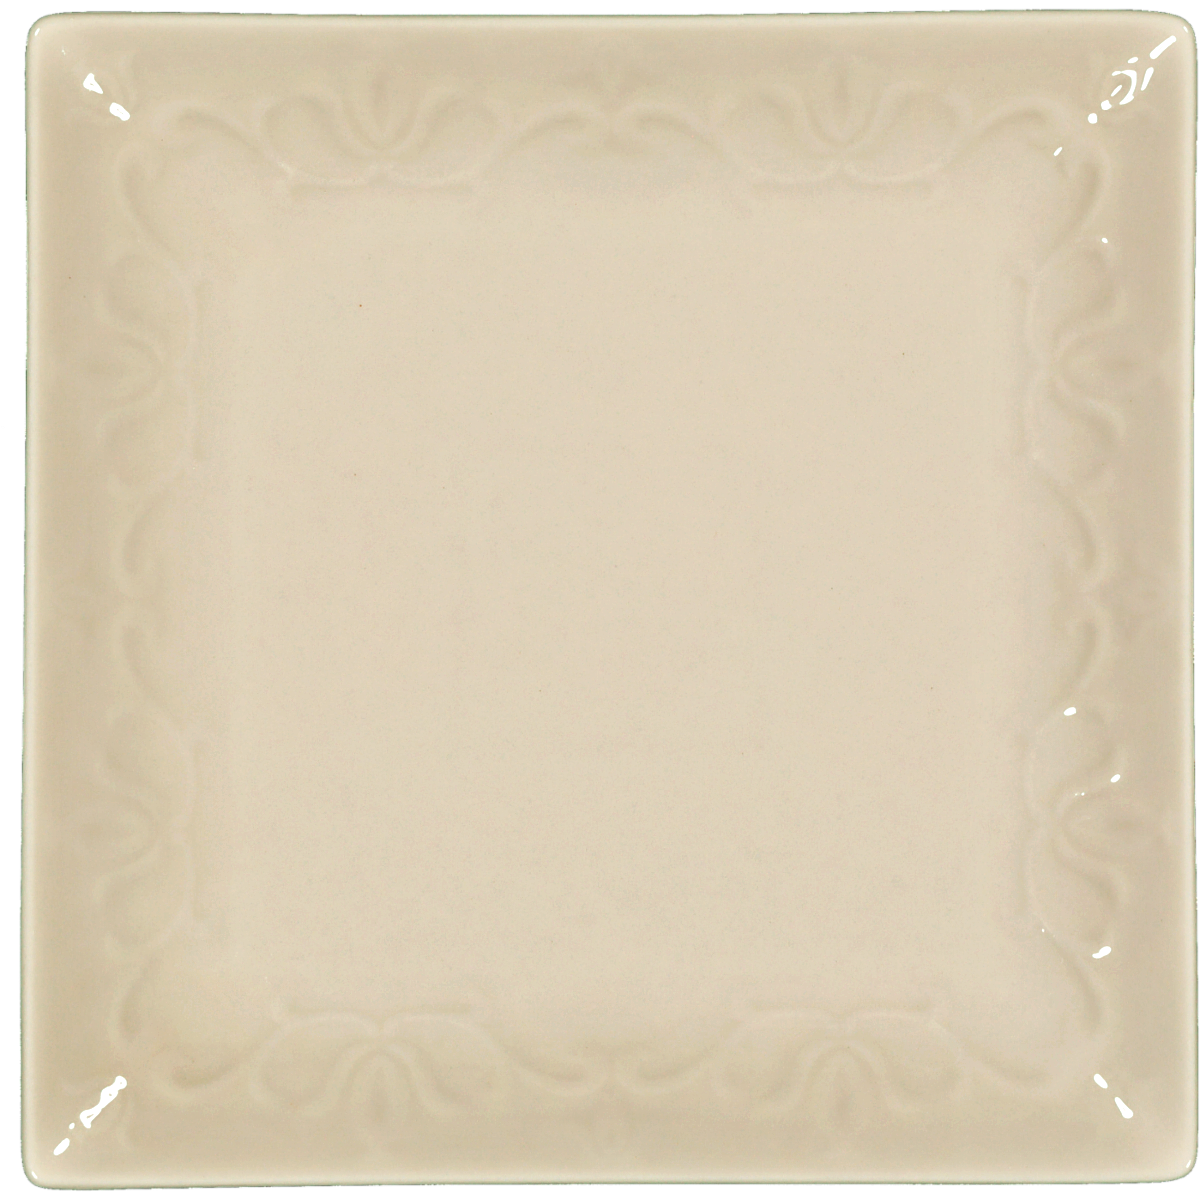 SQUARE SIDE PLATE LEAF DESIGN